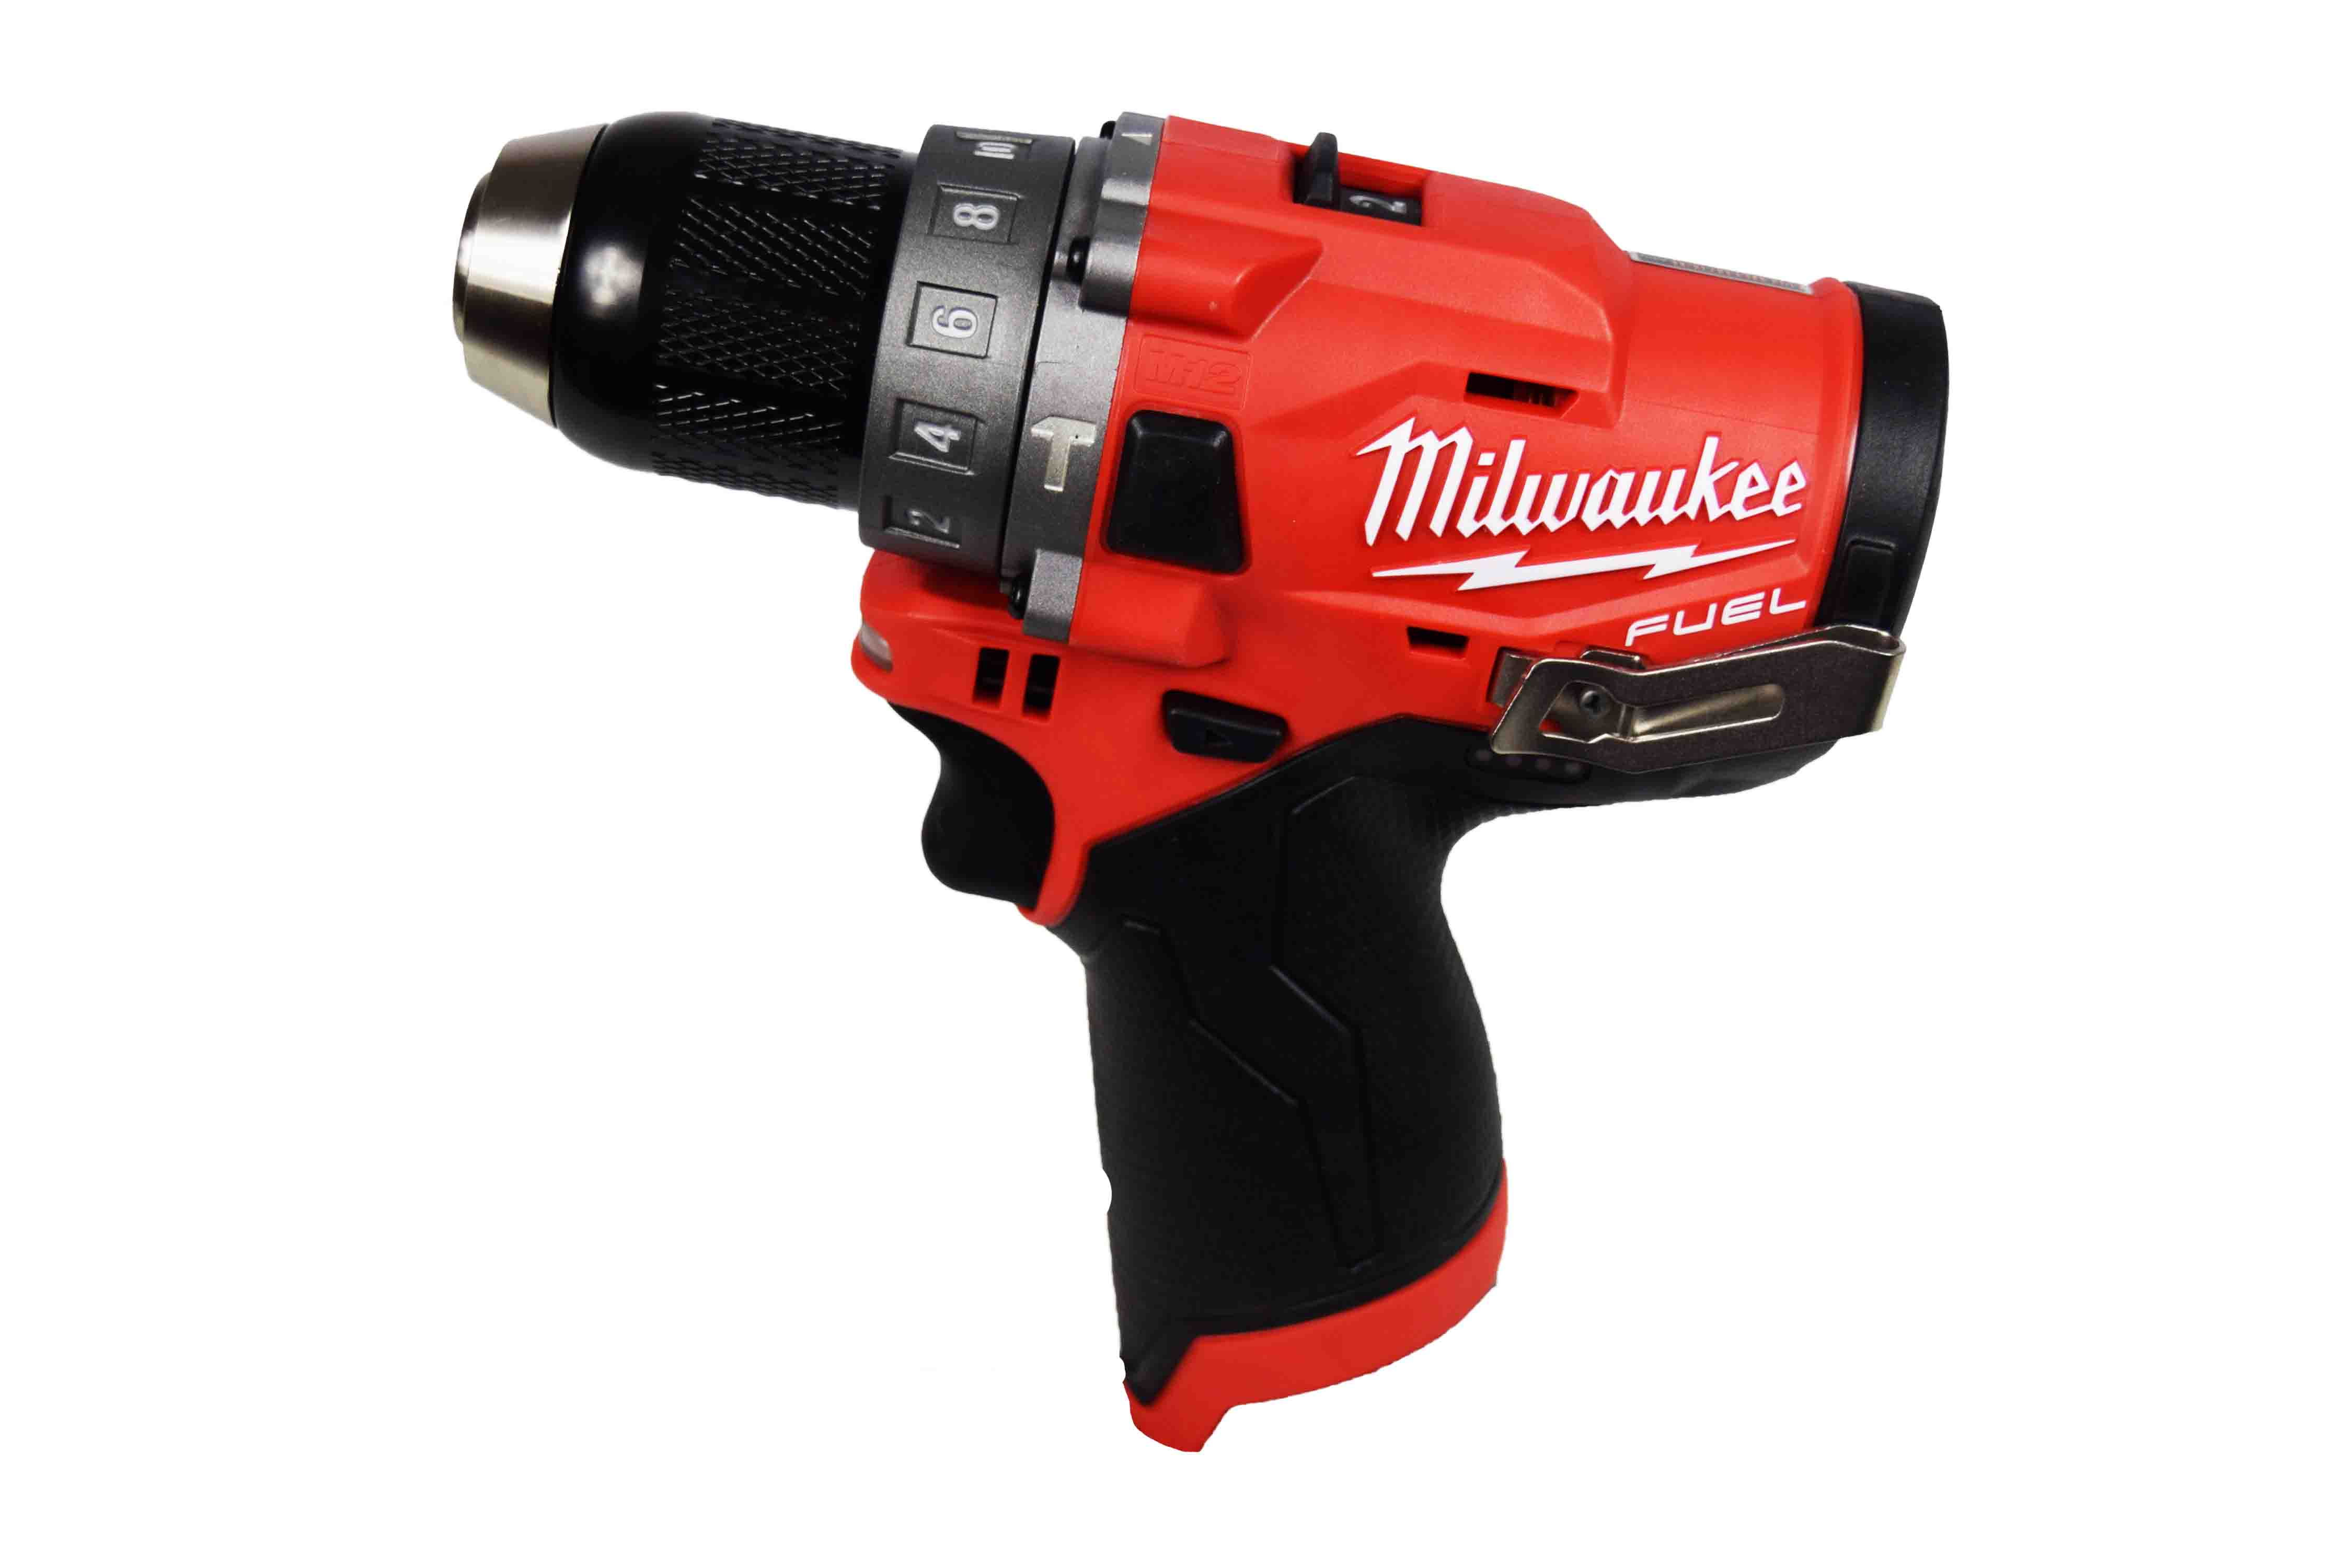 Milwaukee-2504-20-M12-Fuel-12-volt-Brushless-1-2-In.-Hammer-Drill-tool-only-image-1